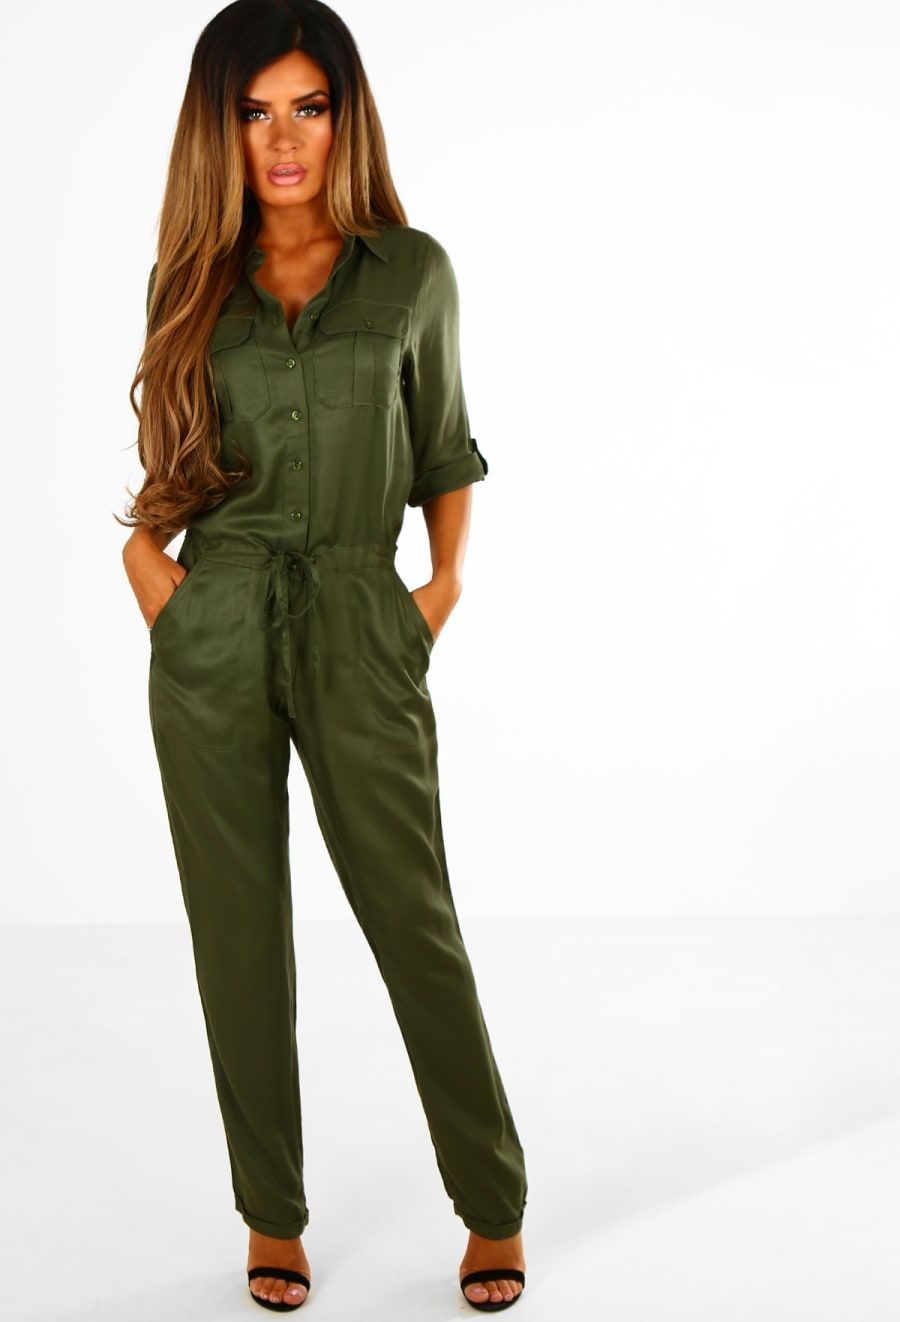 065f4527b25982 Persuade Me Khaki Button Up Utility Jumpsuit - 8 in 2019 | Fashion ...